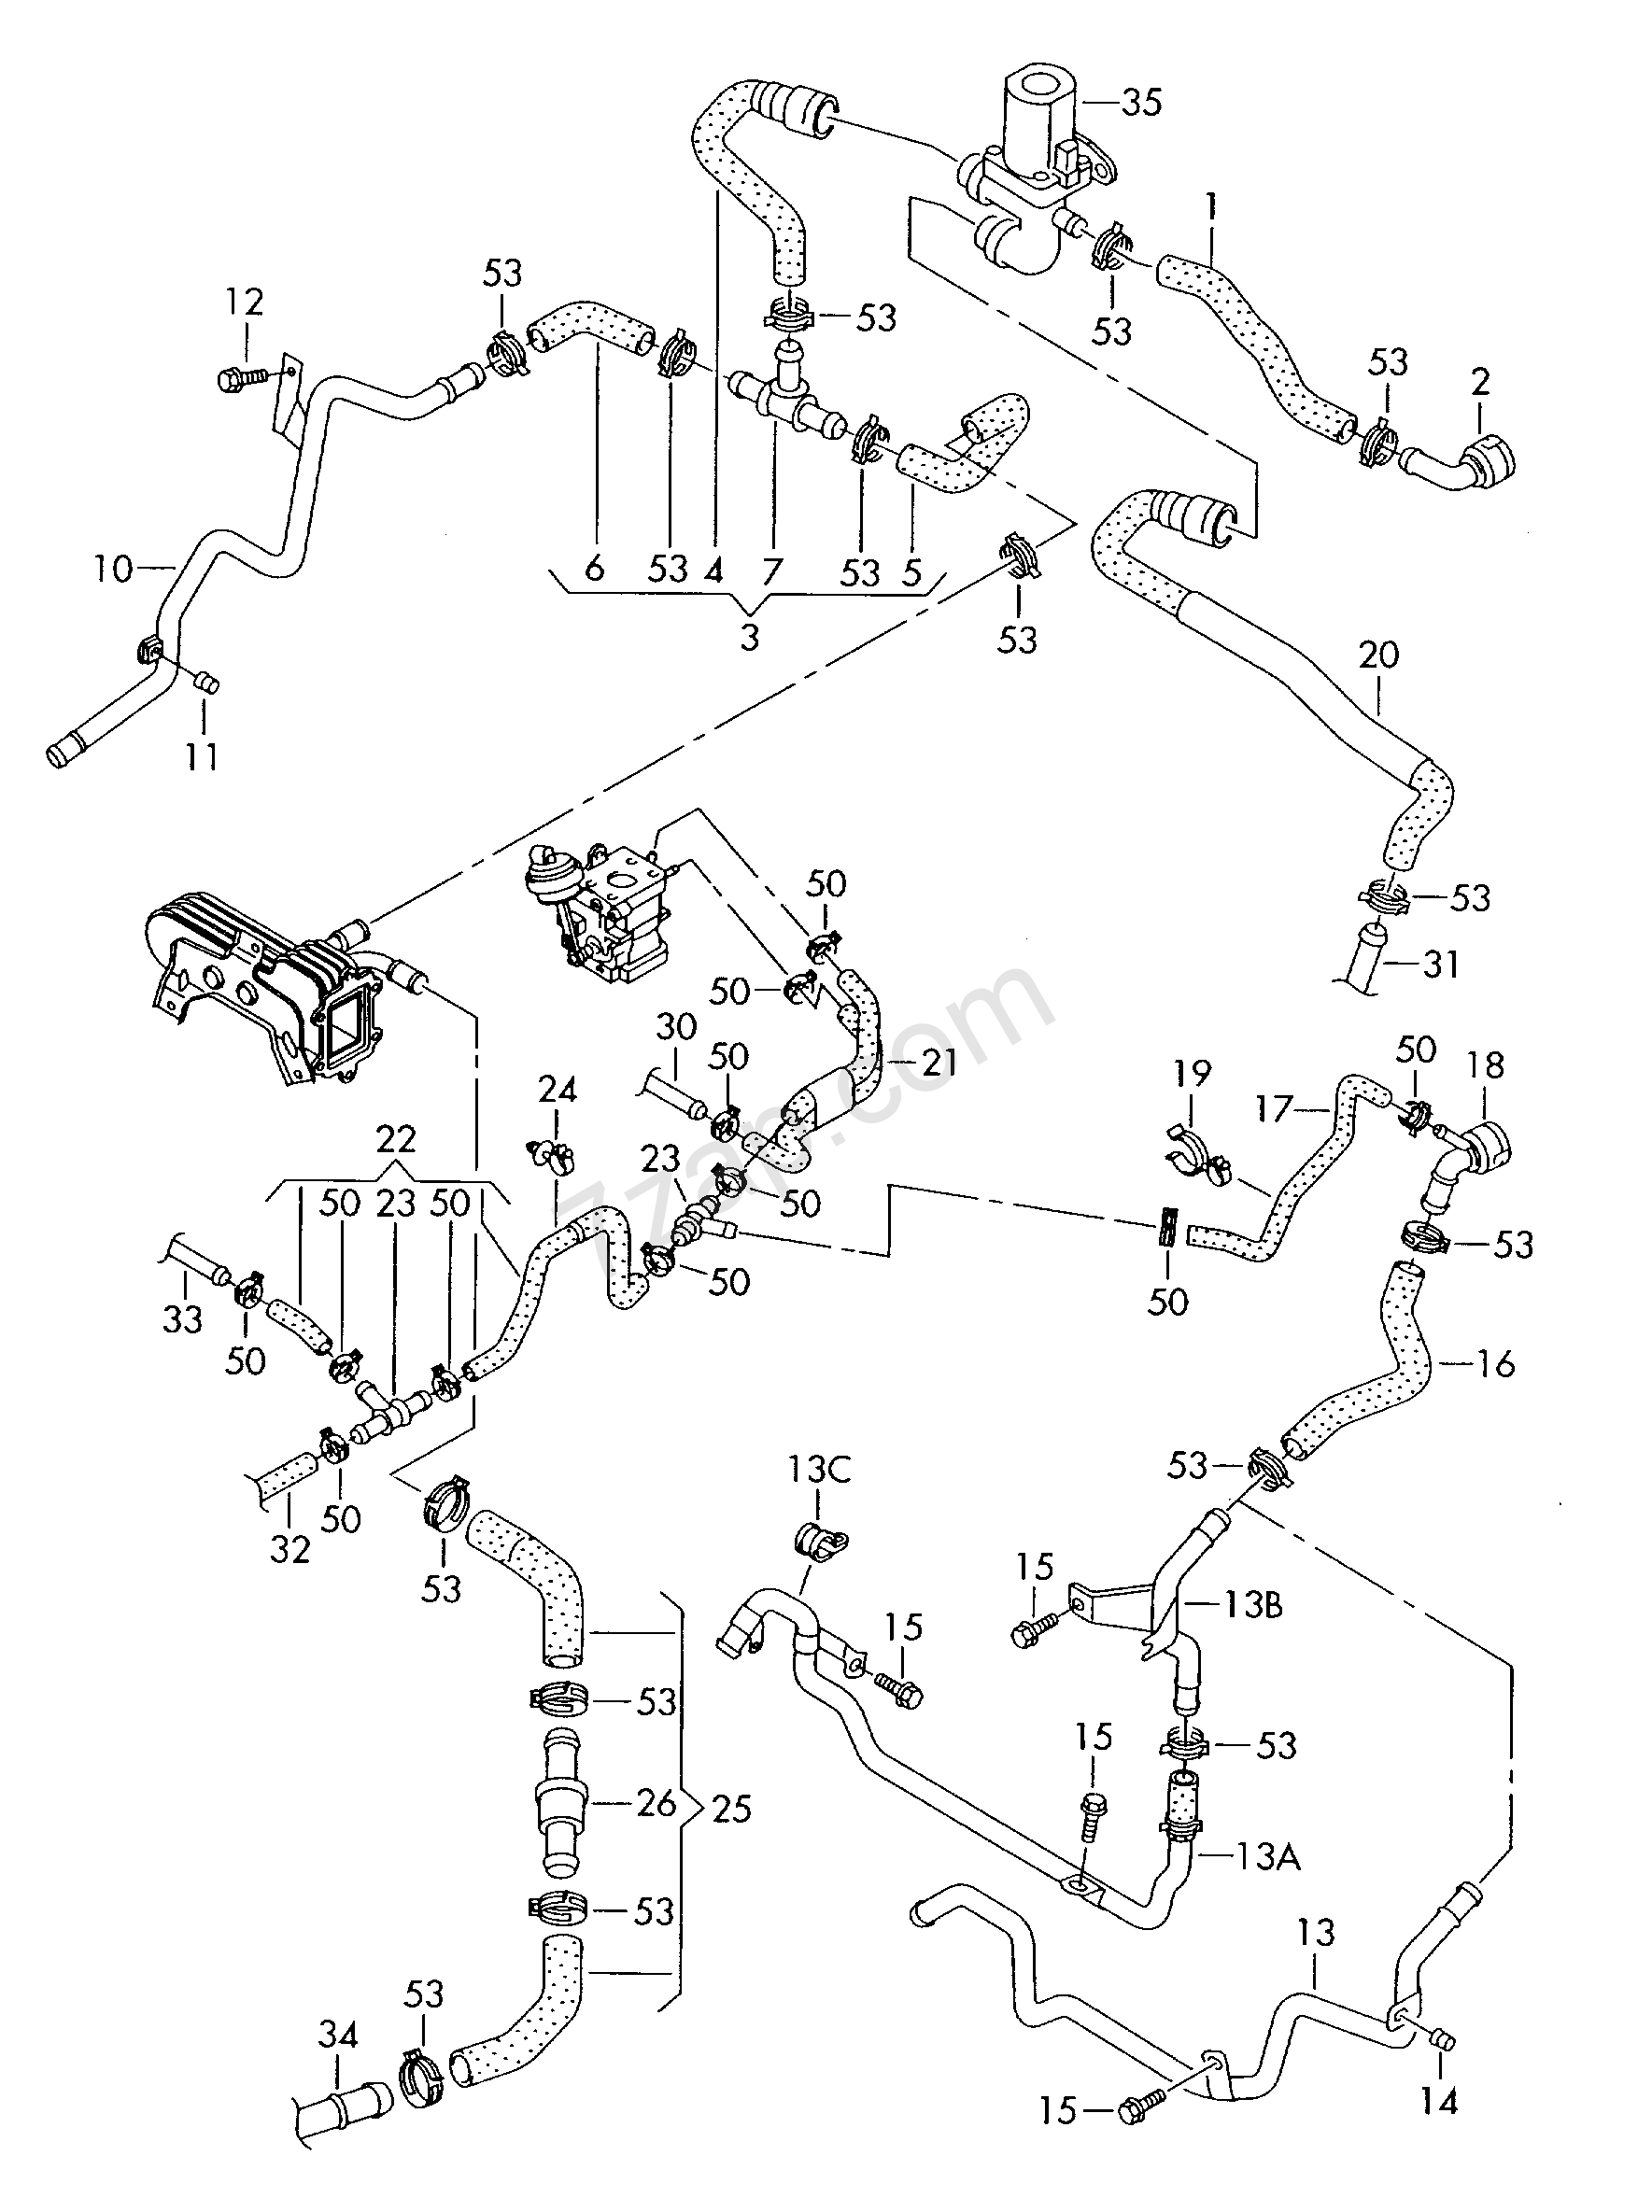 coolant cooling system  for vehicles with auxiliar